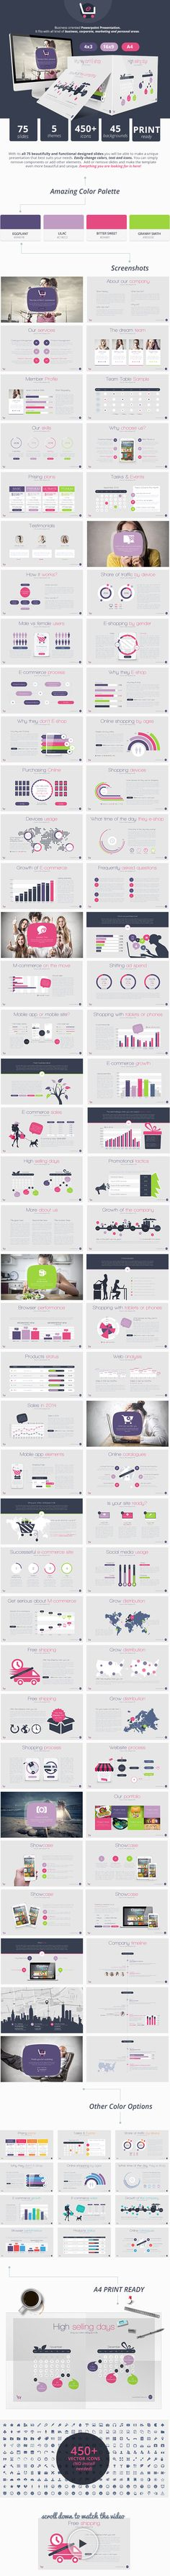 http://graphicriver.net/item/the-rise-of-the-ecommerce/12627246?ref=veshi